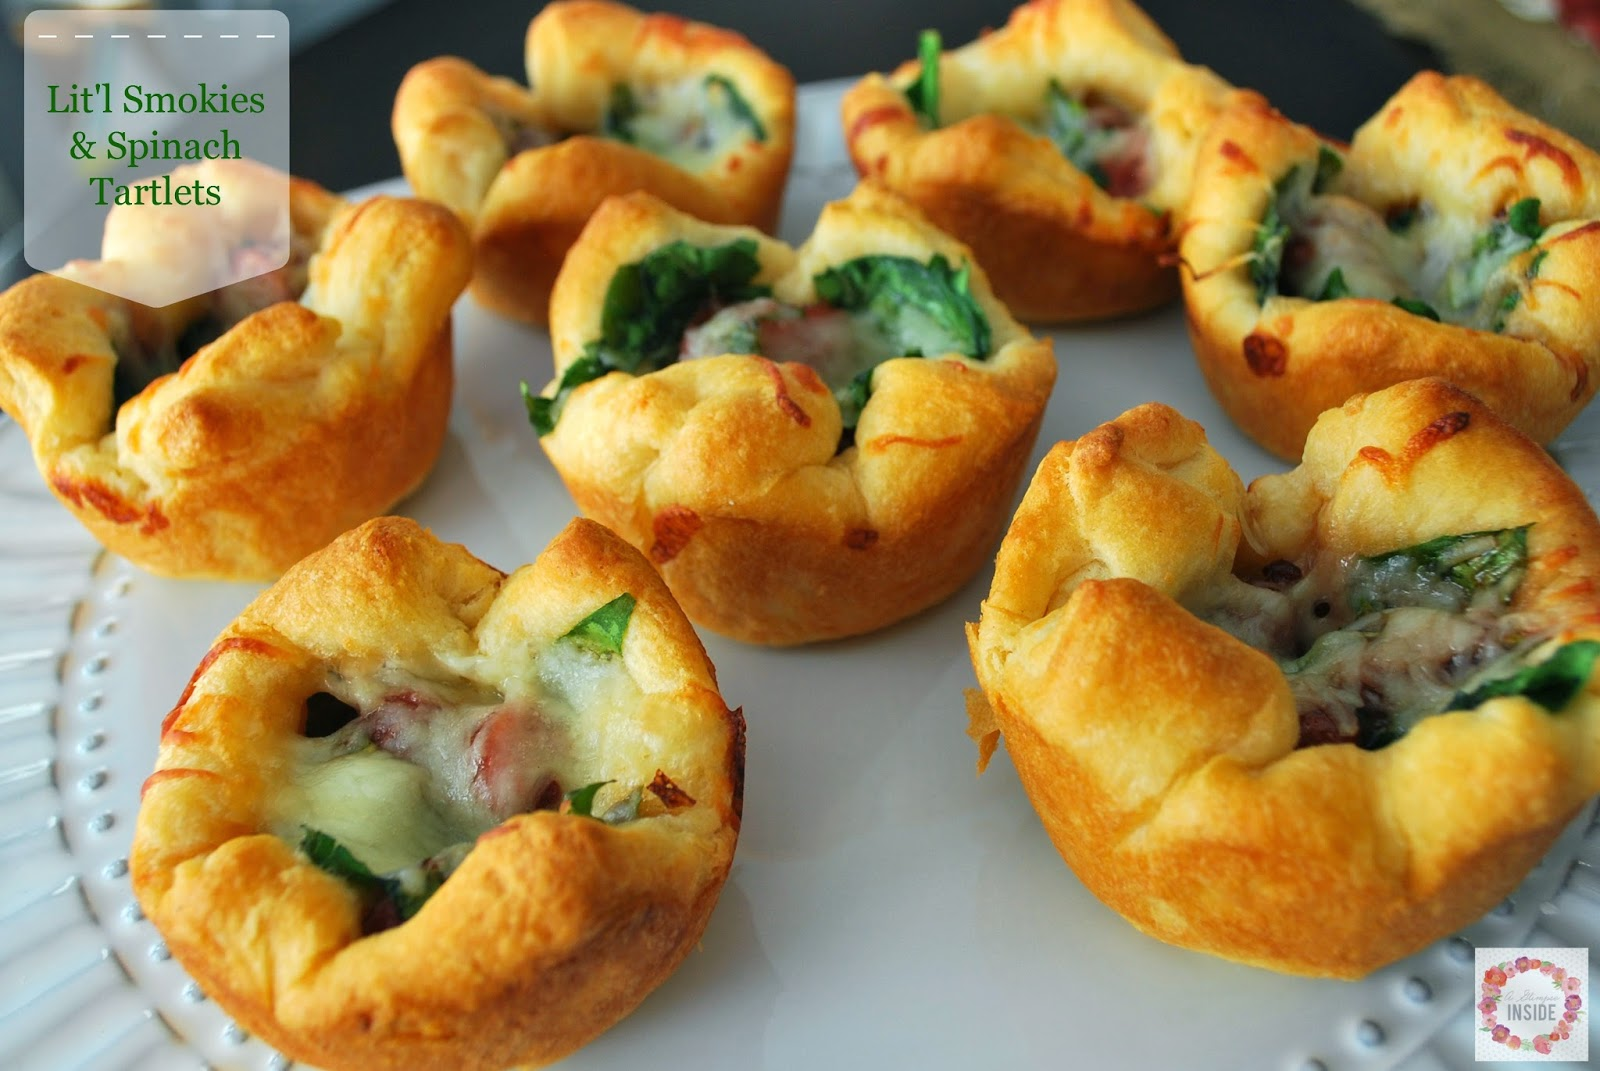 http://www.aglimpseinsideblog.com/2014/10/litl-smokies-and-spinach-tartlets.html